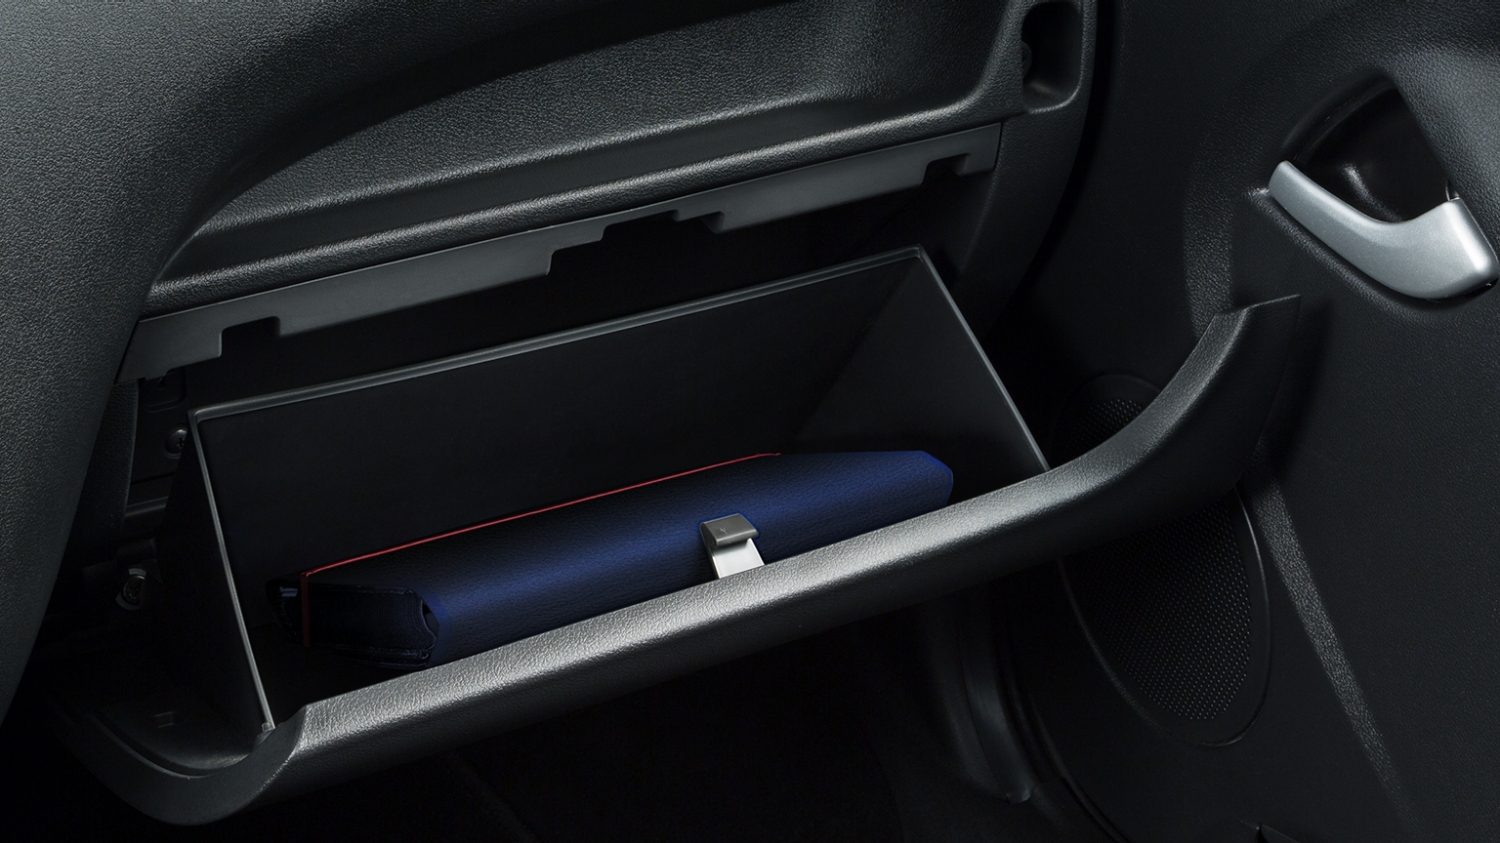 Glove Compartment with Product